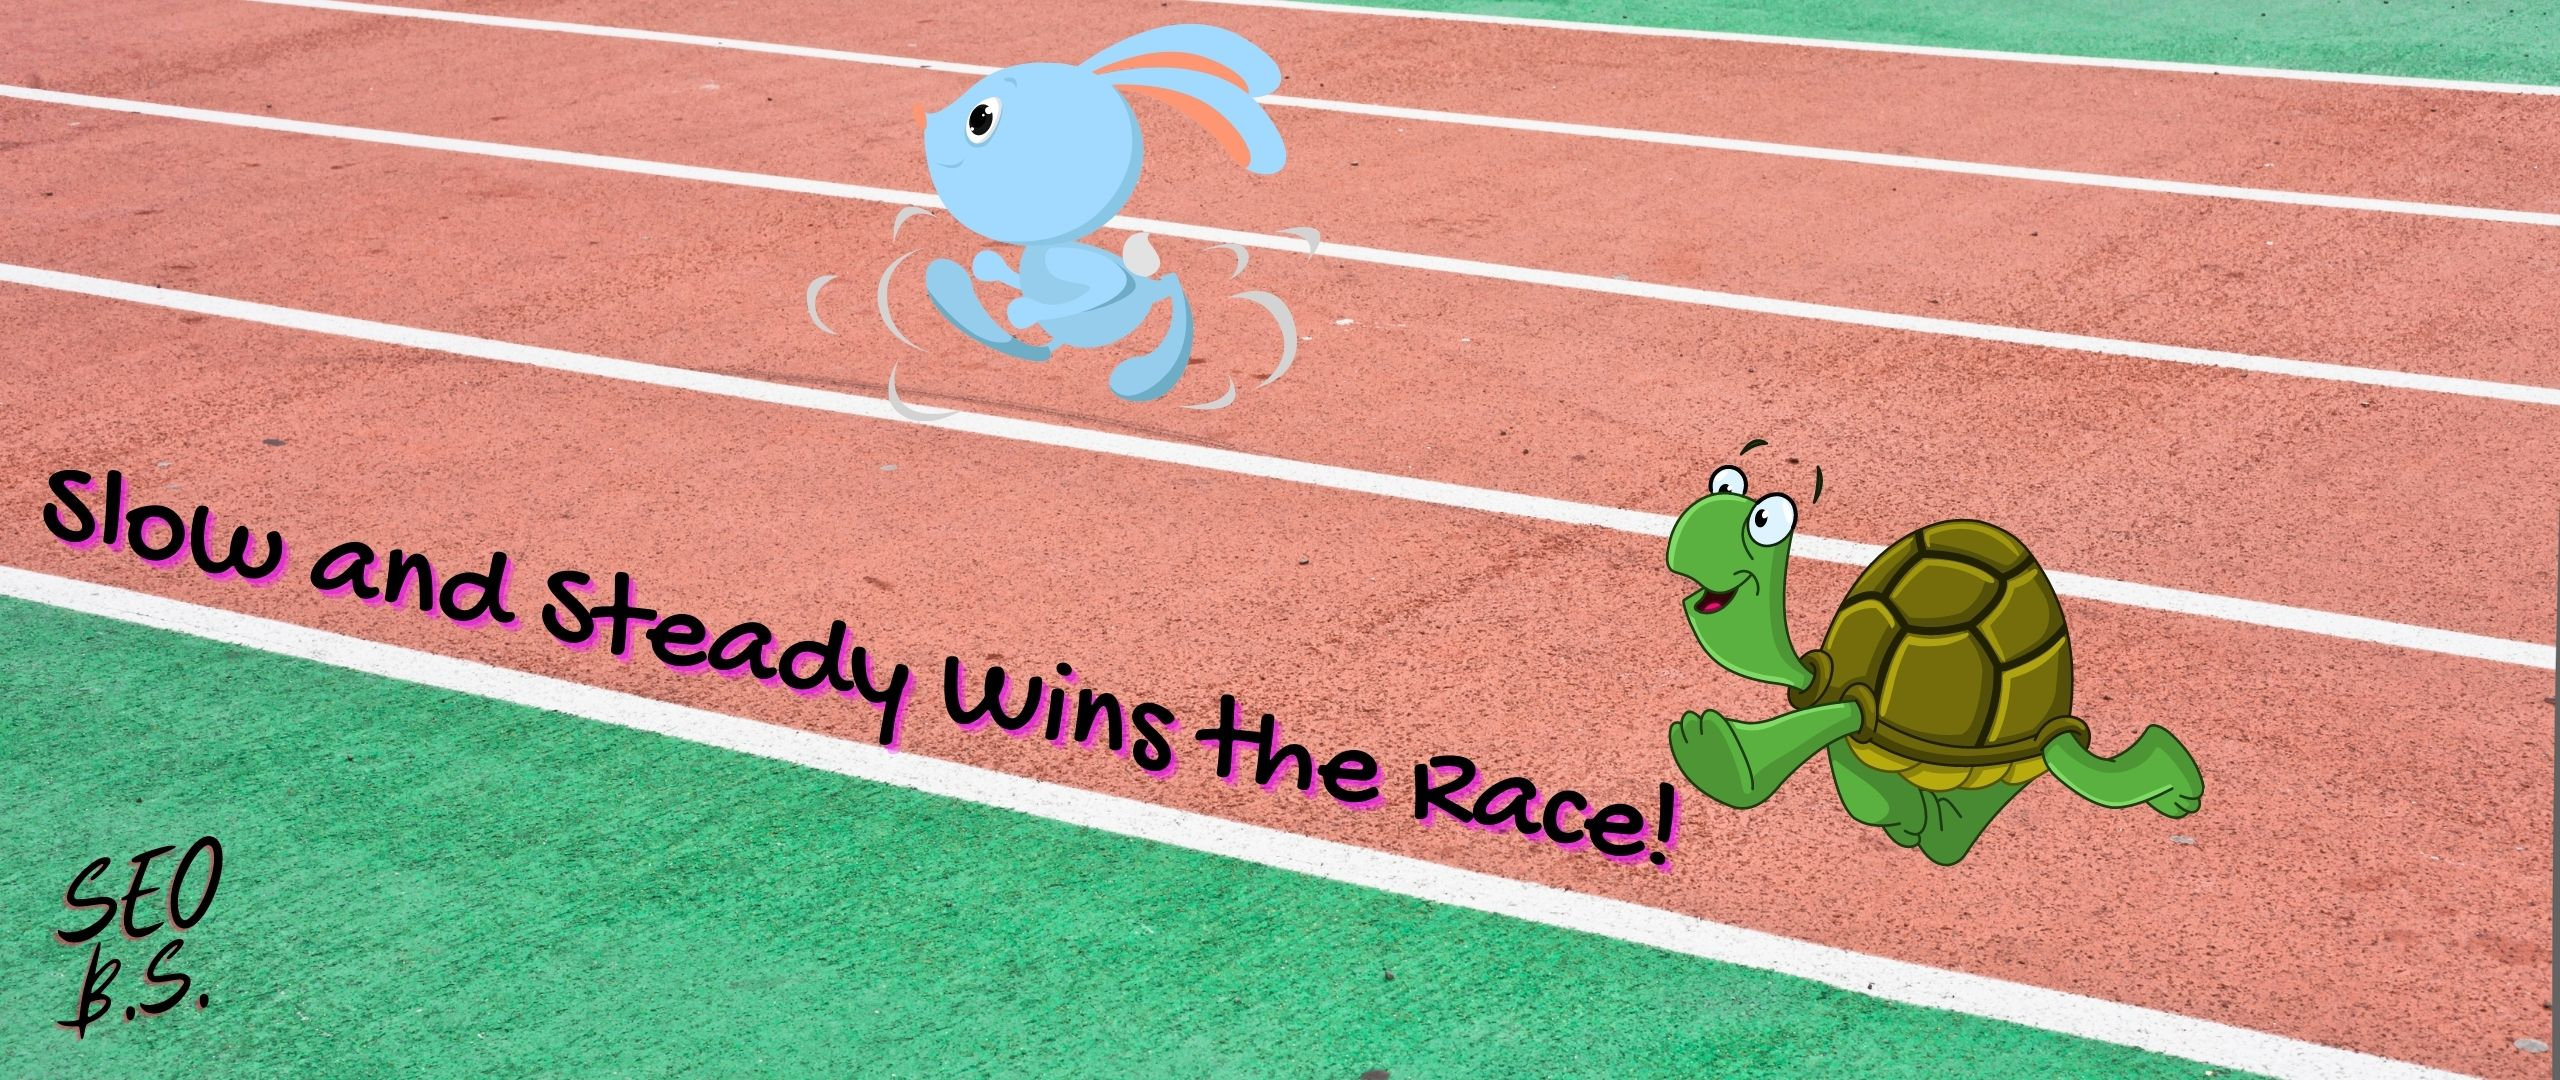 picture of Slow and Steady Wins the Race